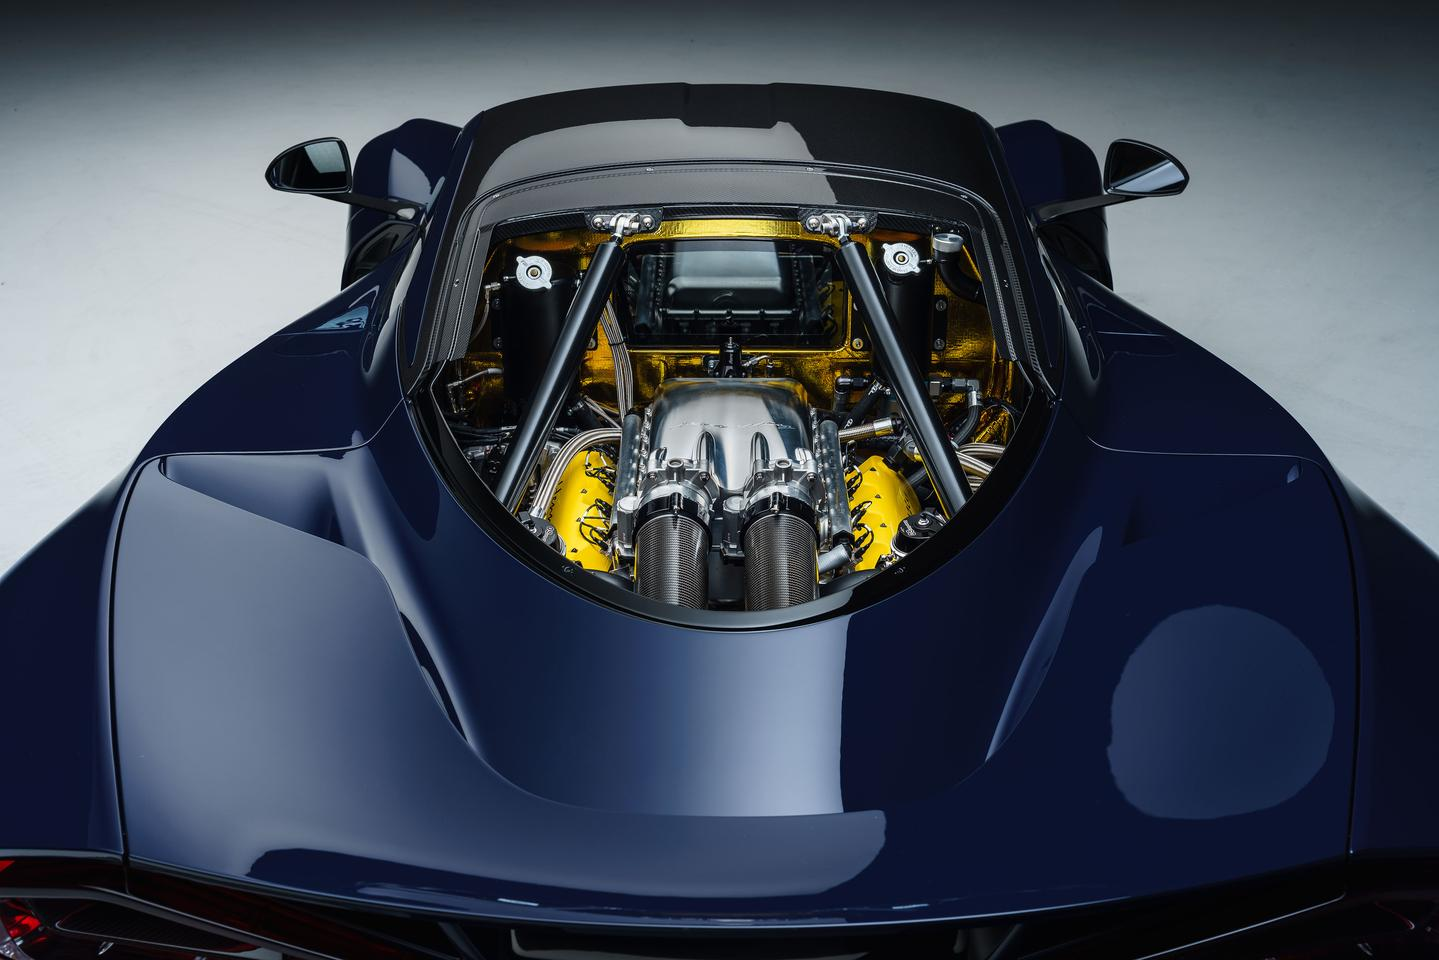 If you lock eyes with this engine, avert your gaze. It is angry and dangerous and cares not for human life